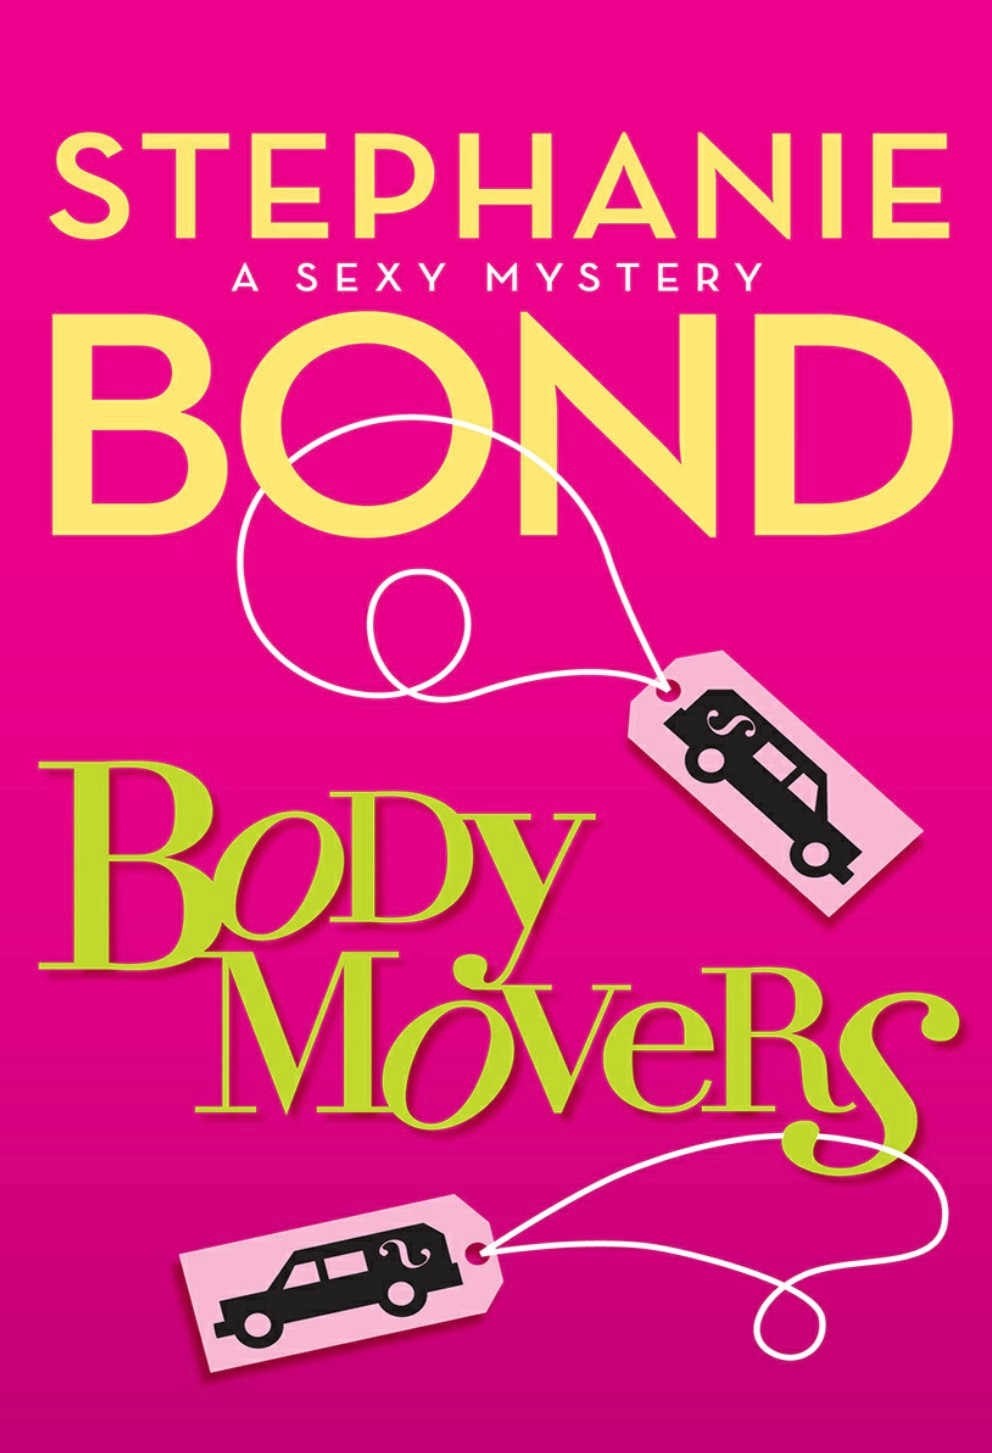 Body Movers, Stephanie Bond, novel, good read, book recommendation